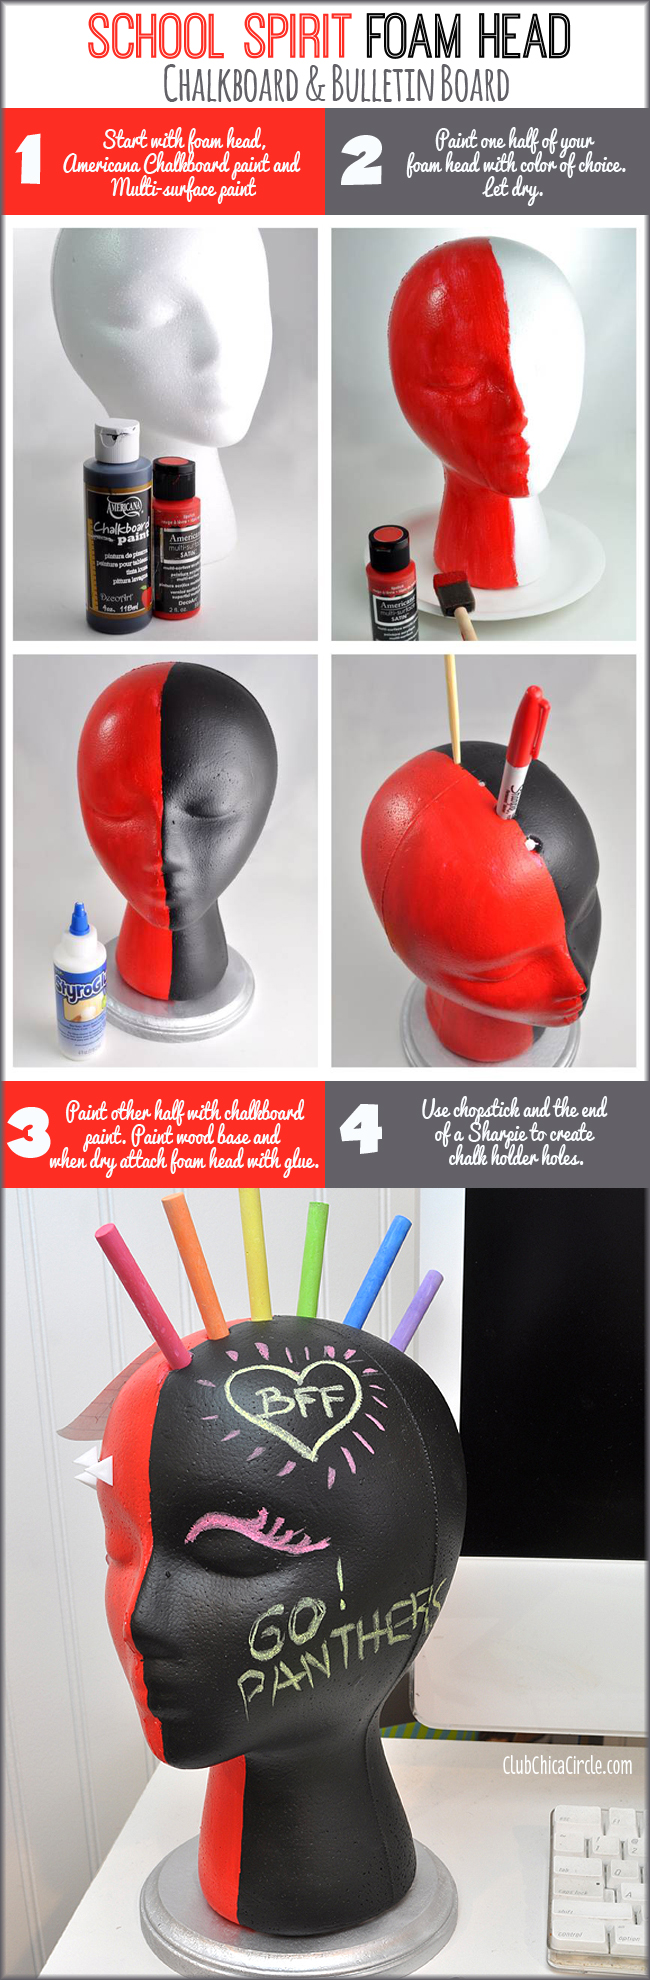 How to make a cool chalkboard bulletin board desk accessory